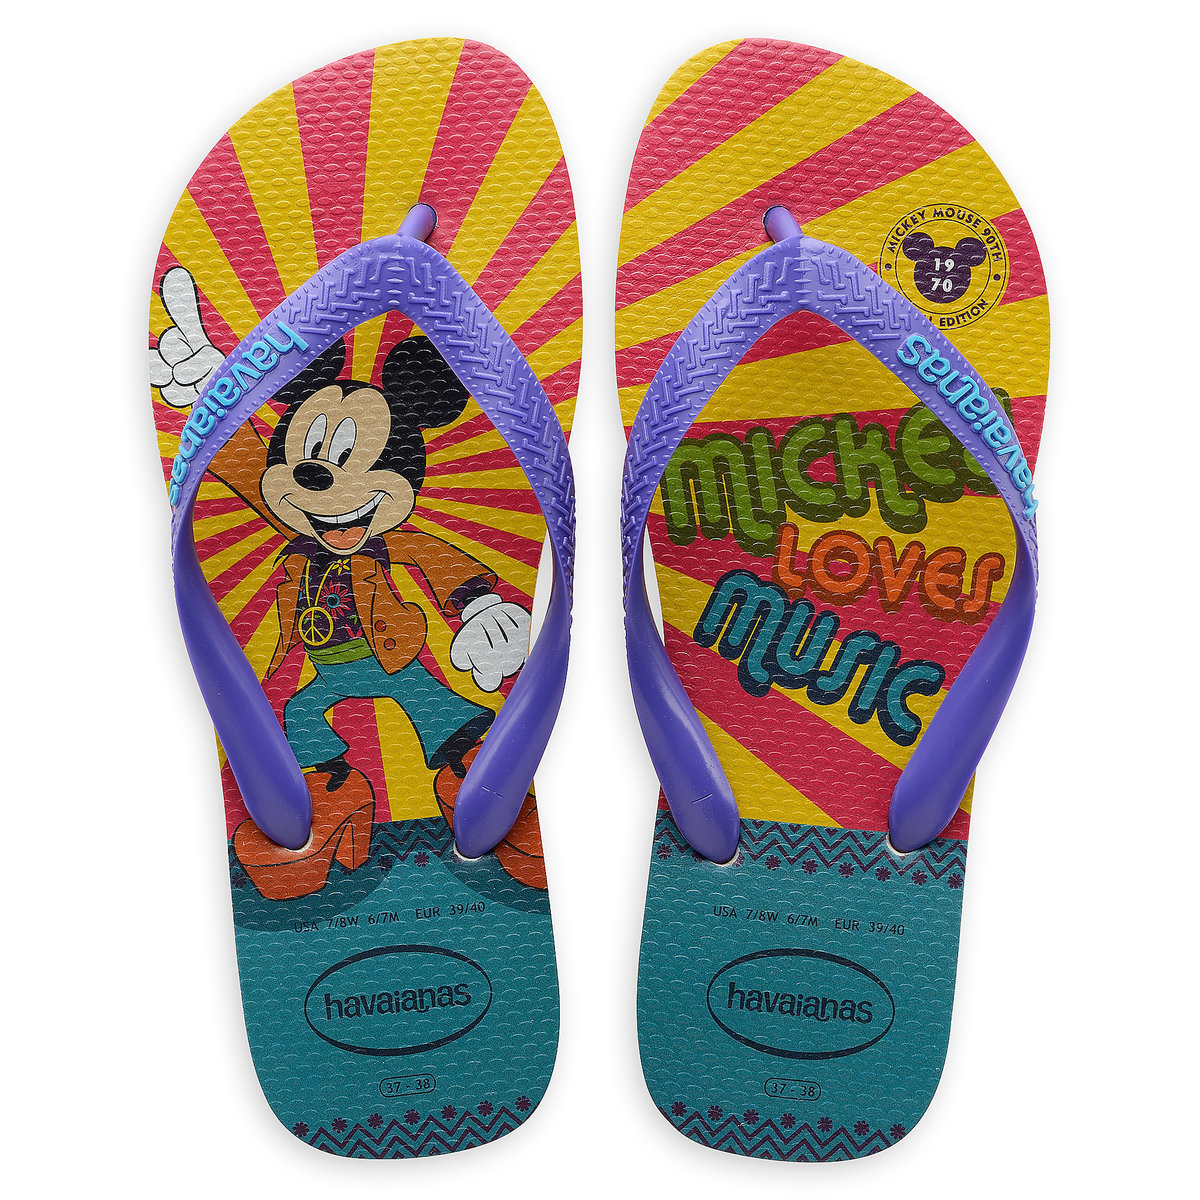 32b0c9f767b Product Image of Mickey Mouse Disco Flip Flops for Adults by Havaianas -  1970s   1